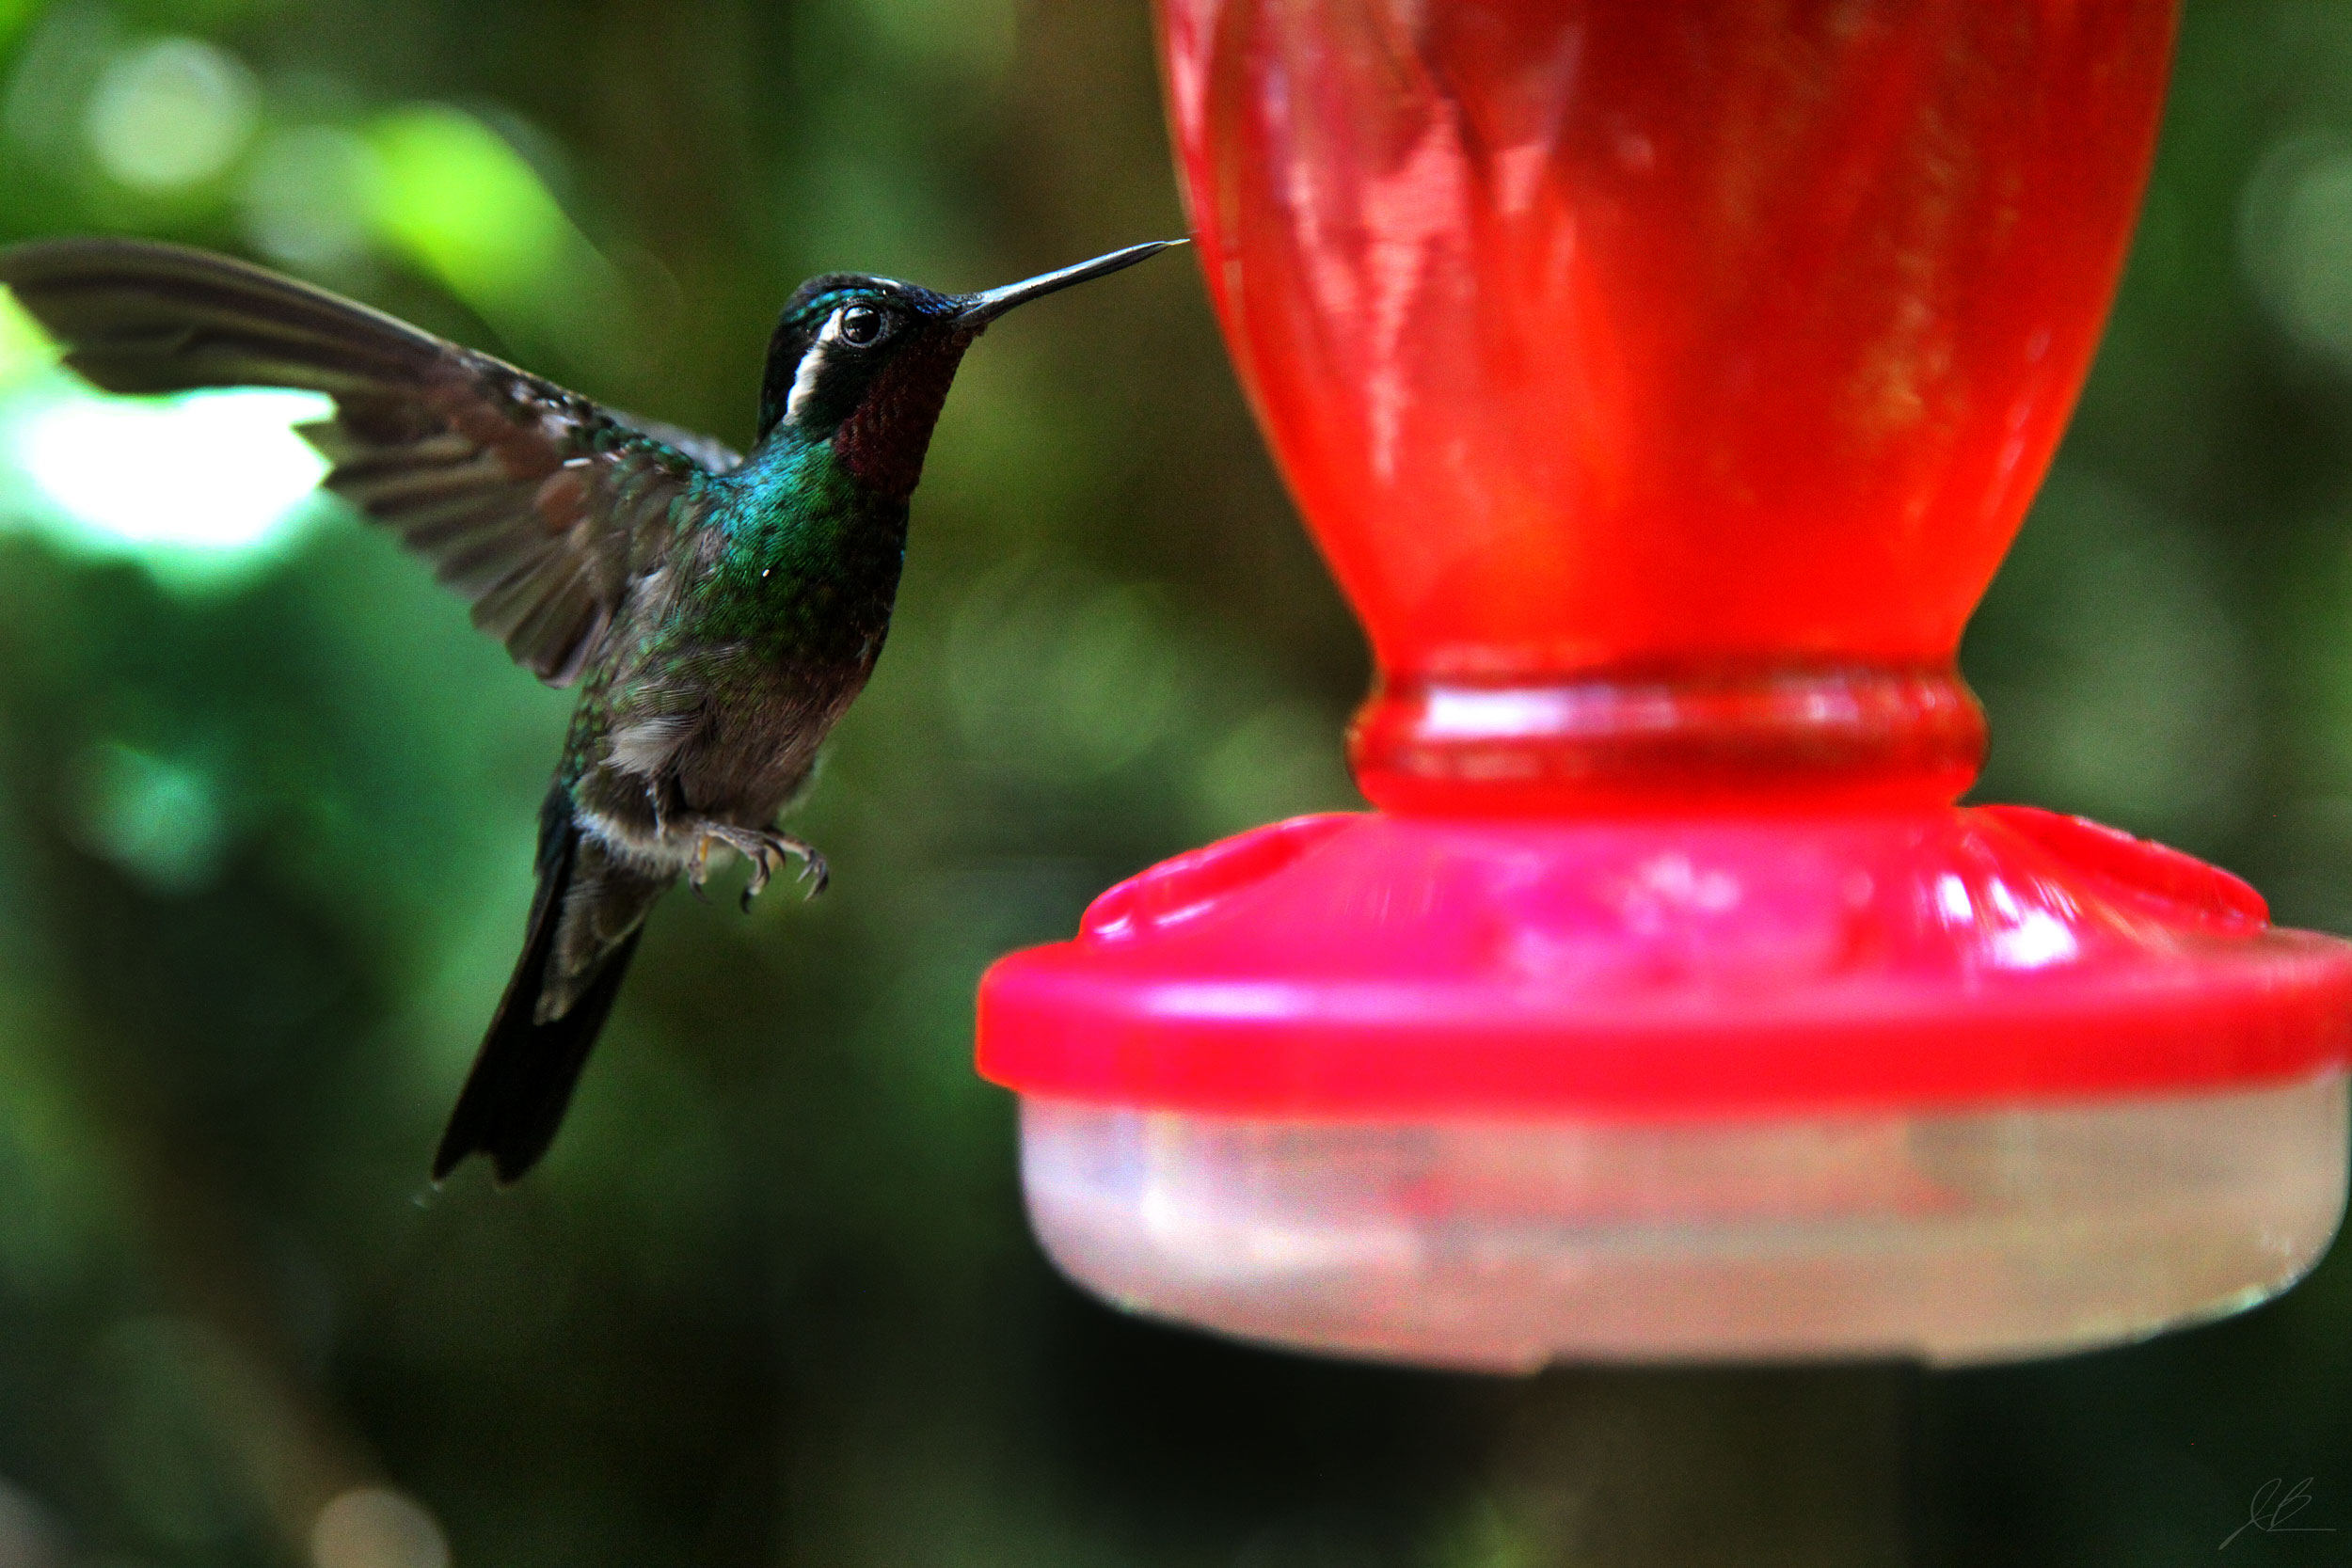 hummingbird-1-edit-.jpg